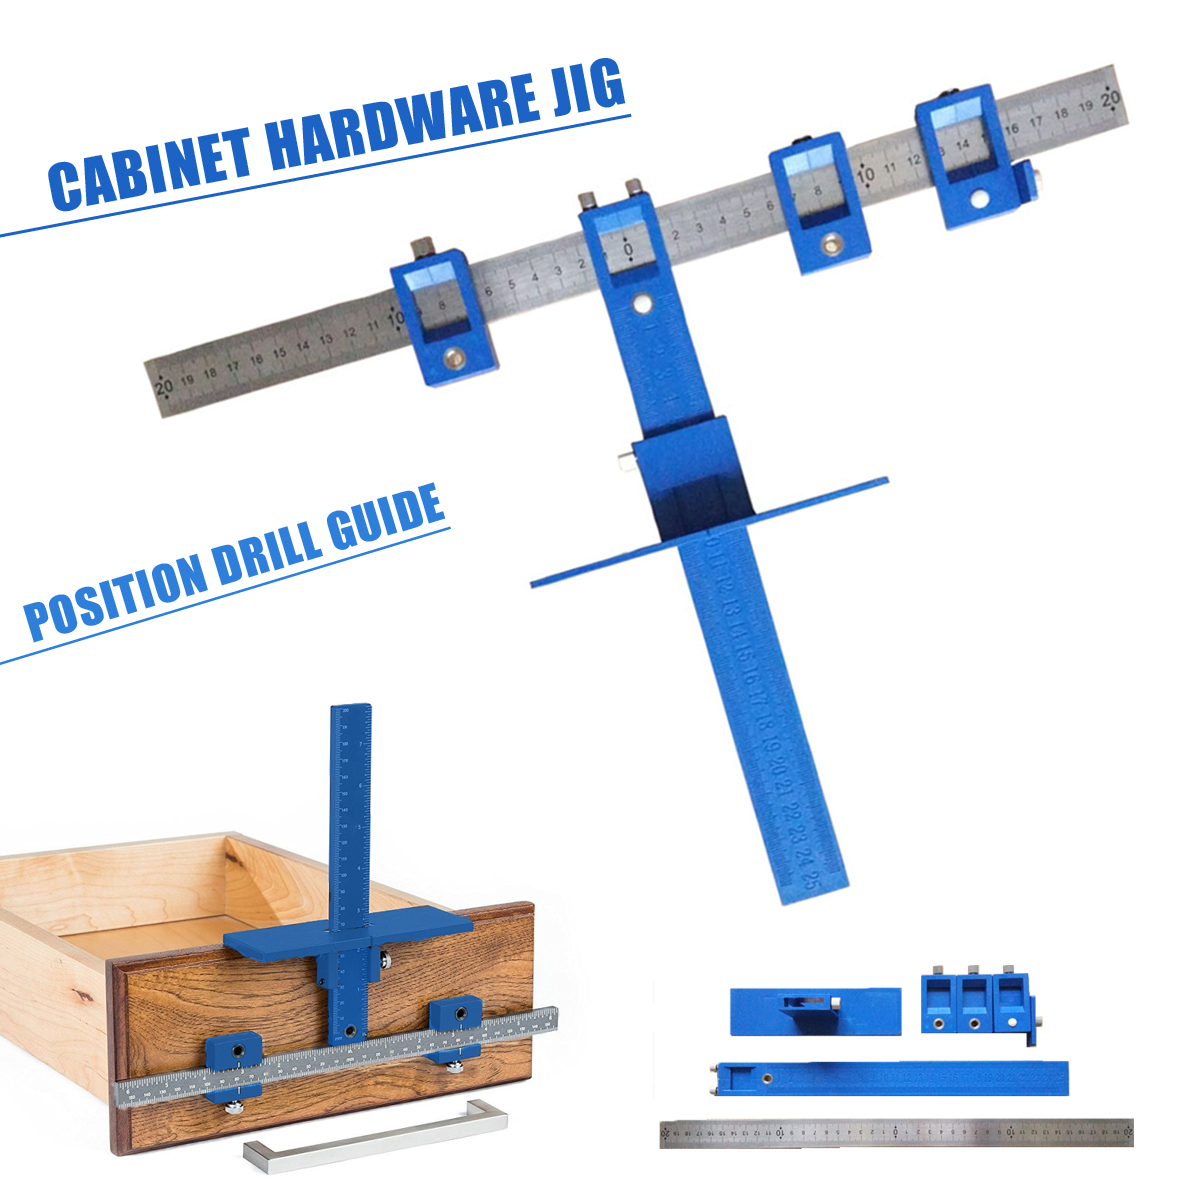 1Set Drill Guide Sleeve Cabinet Hardware Jig Drawer Pull Jig Wood Drilling Dowelling Hole Saw Master System Drill Bit Power Tool 1set home power tool 50mm concrete cement wall hole saw set drill bit connecting rod wrench power tools tile tool